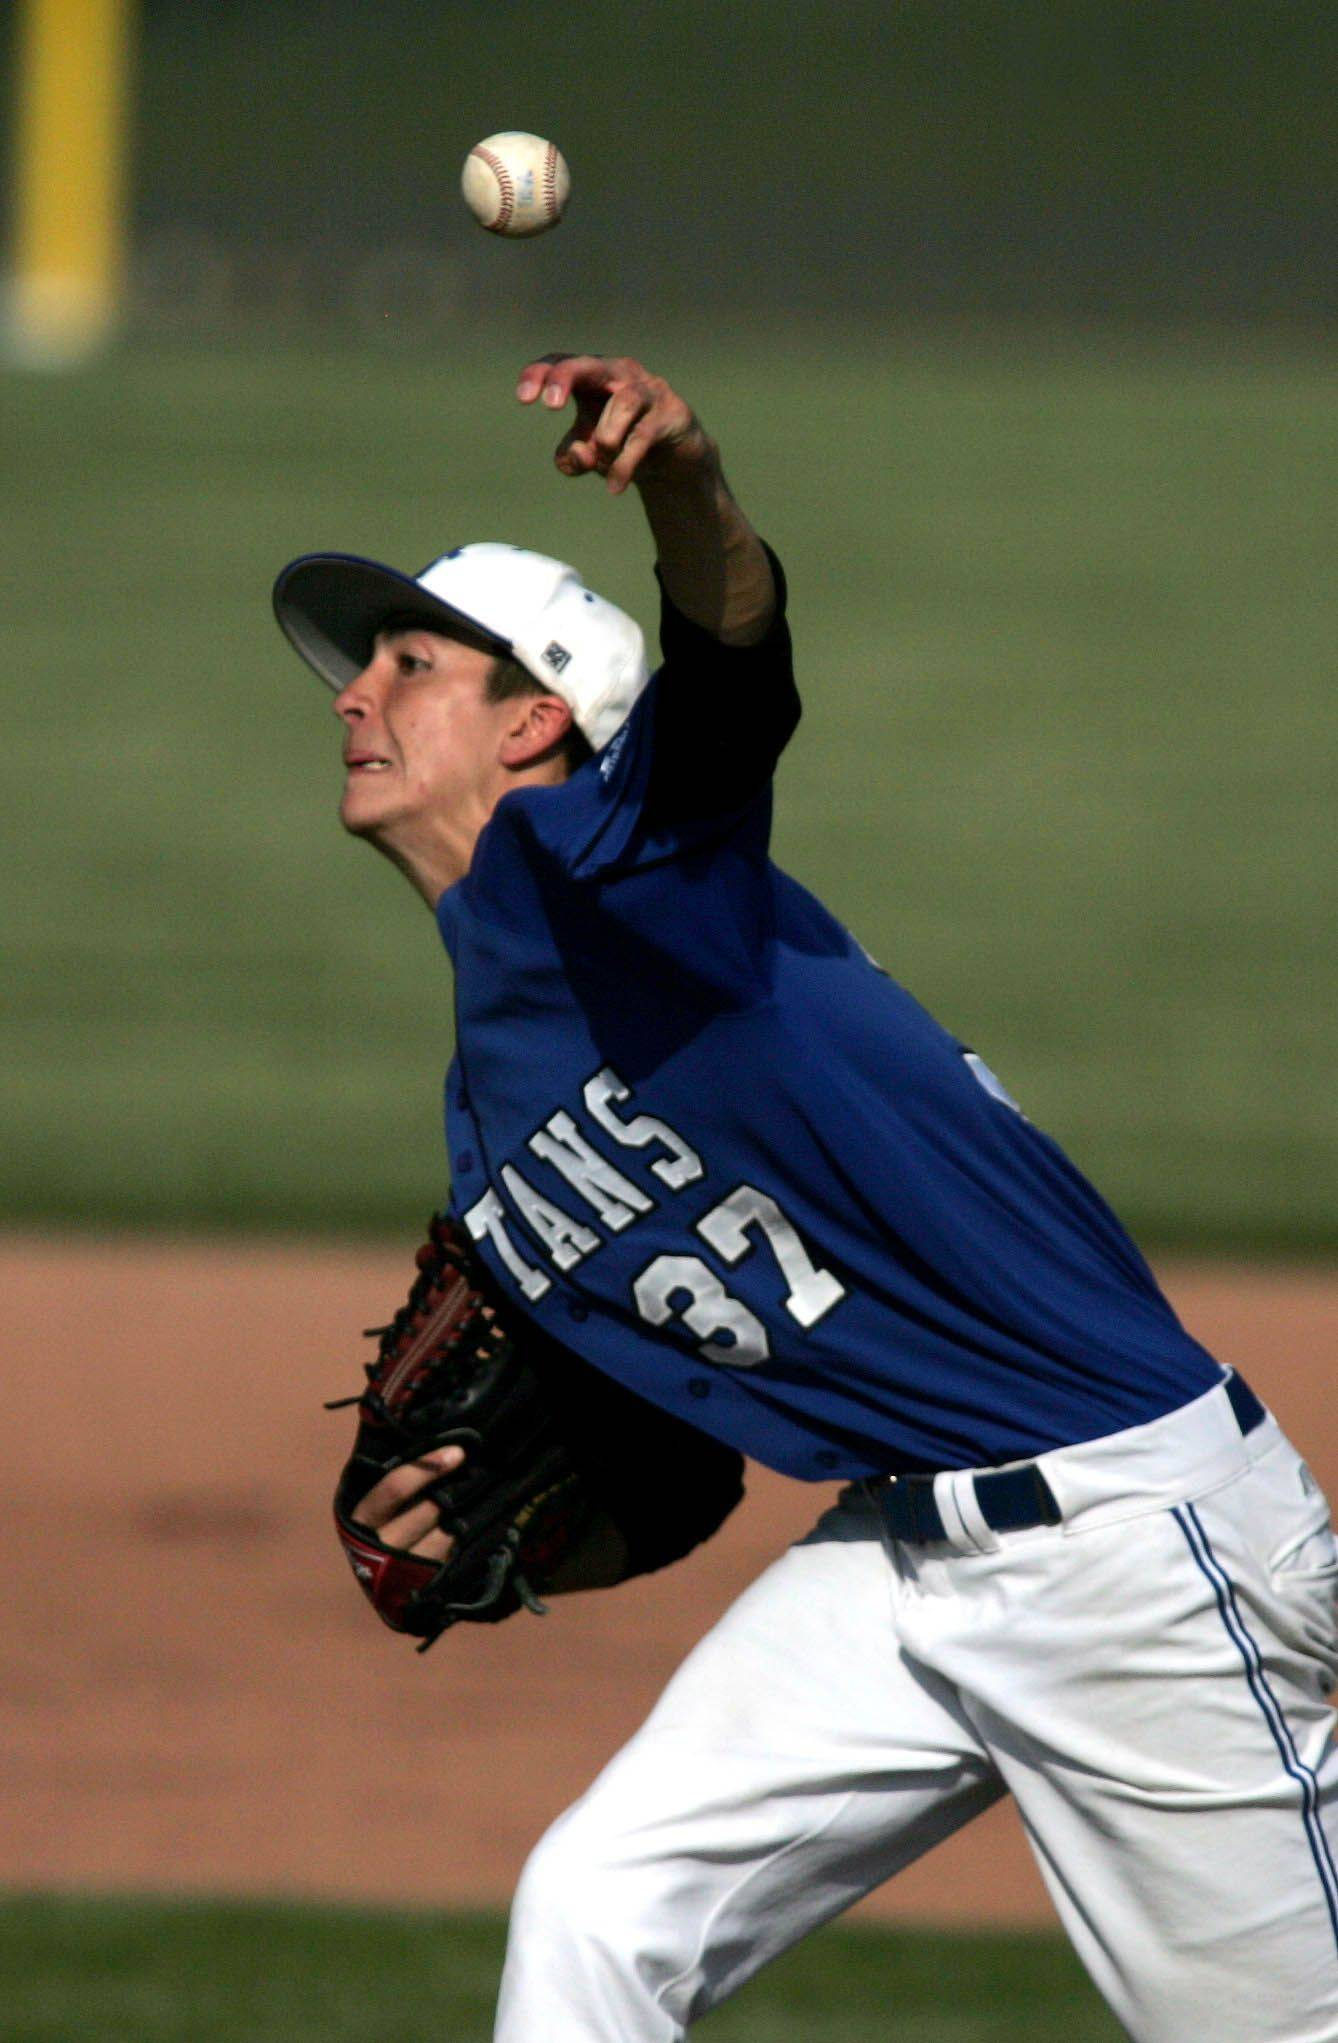 Eric Stout of St. Francis delivers against Nazareth Academy in Class 3A supersectional baseball Monday in Naperville.